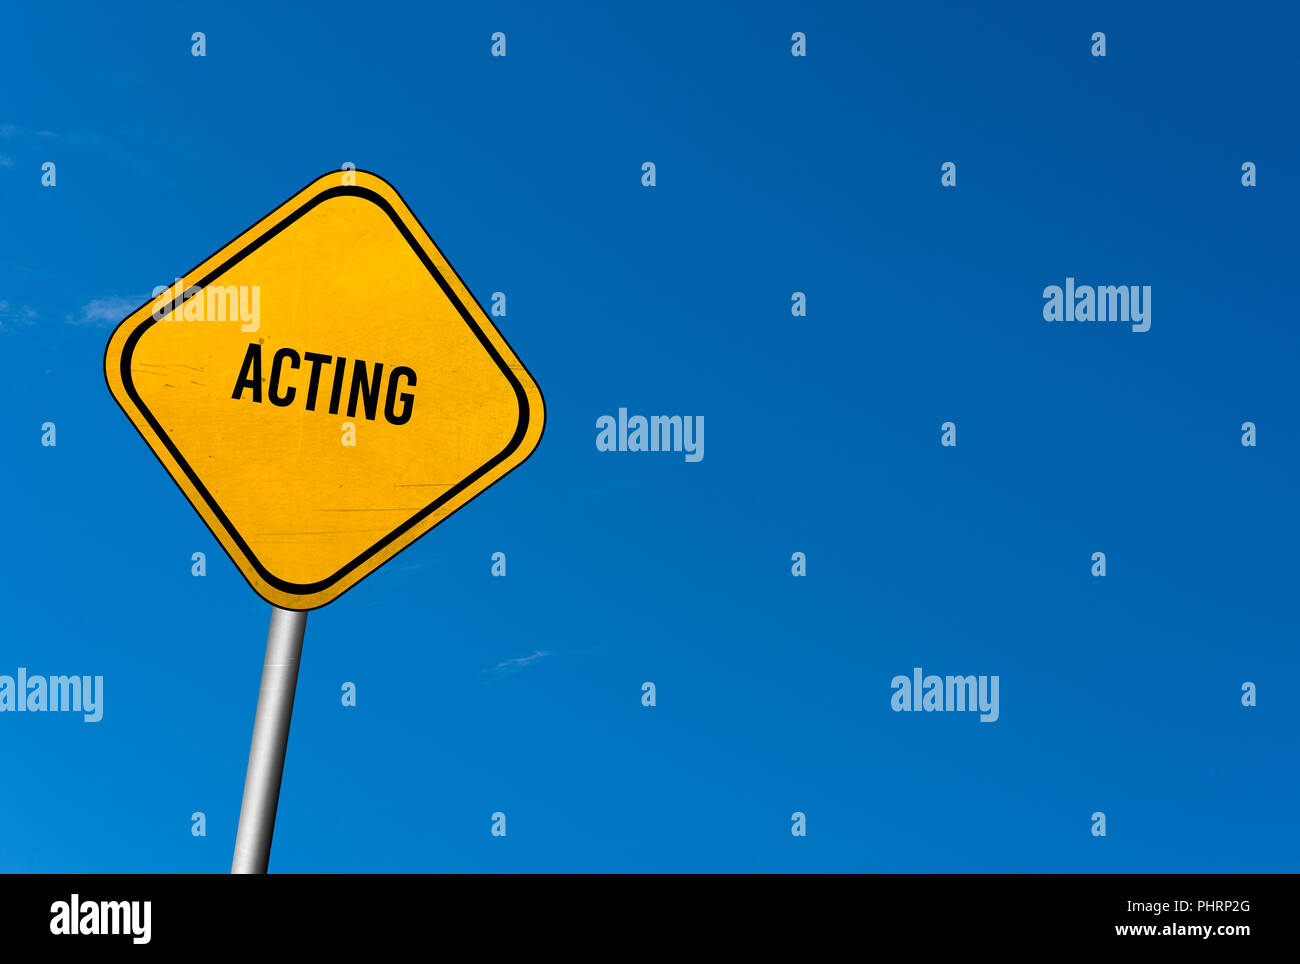 acting - yellow sign with blue sky - Stock Image